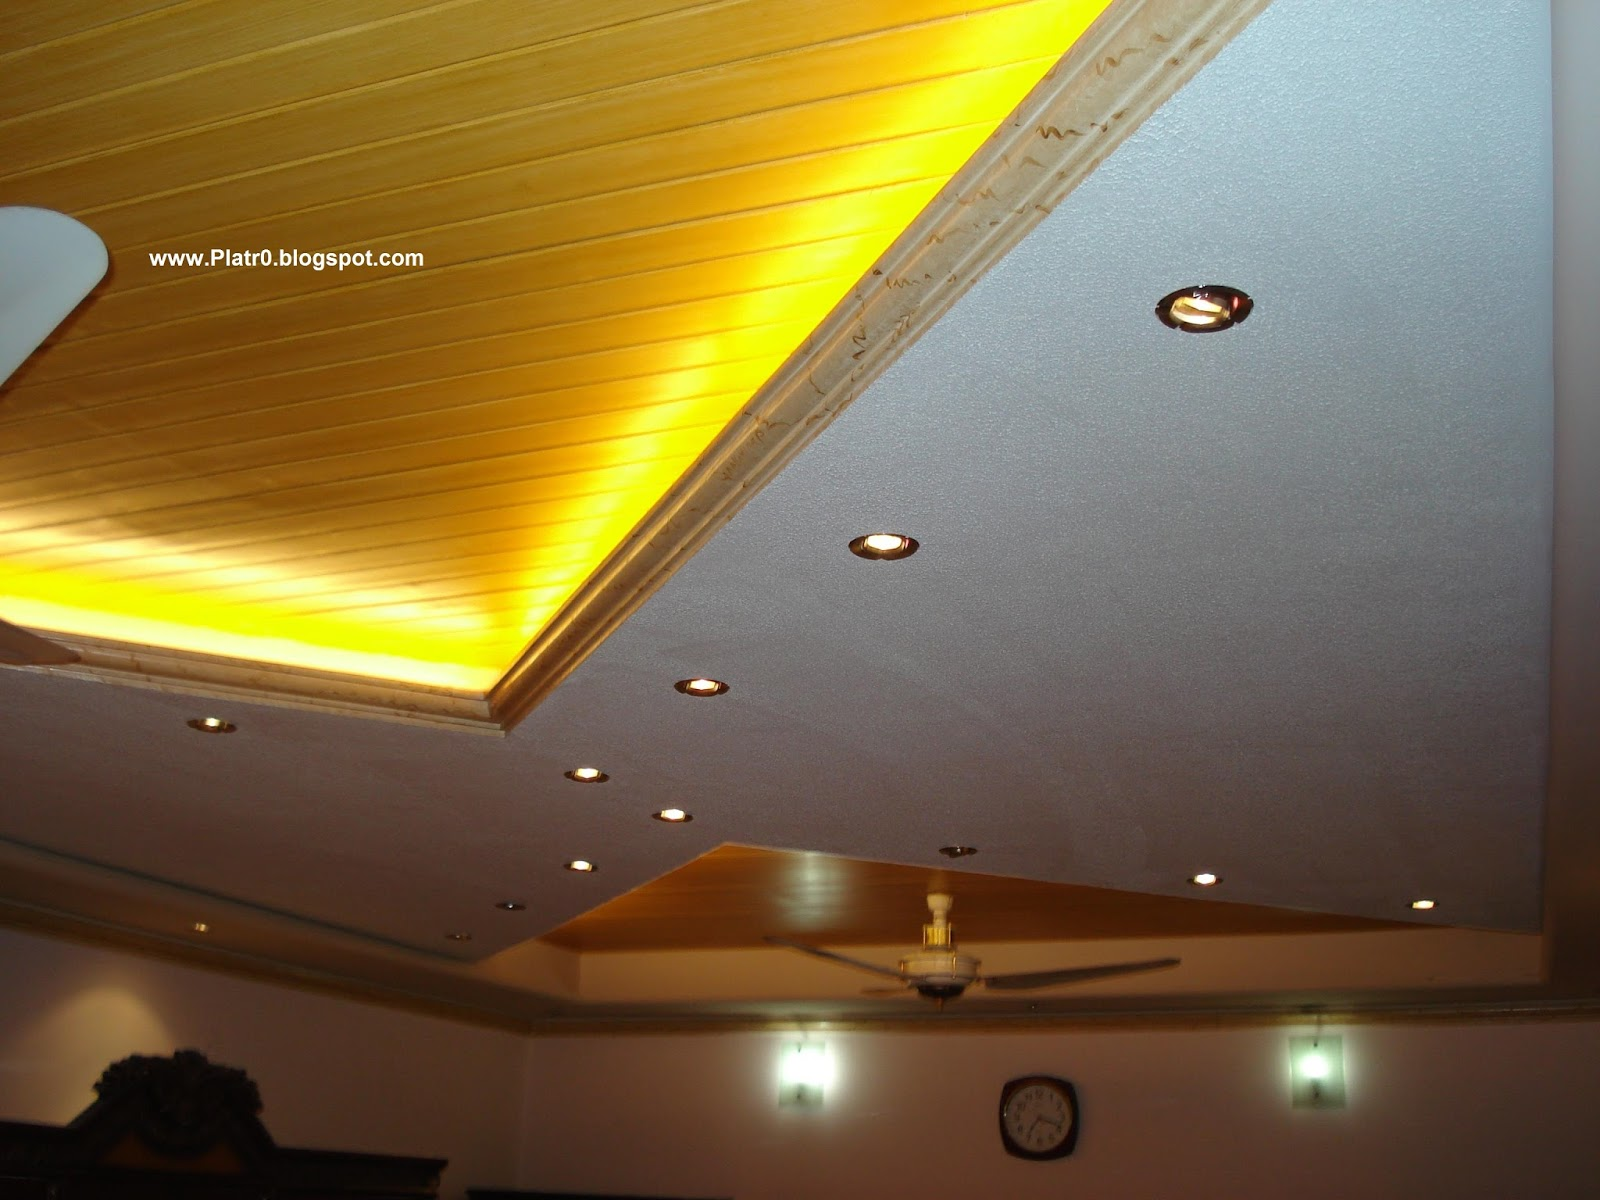 Mode ceiling lights led 2016 d coration platre maroc for Platre dicor 2015